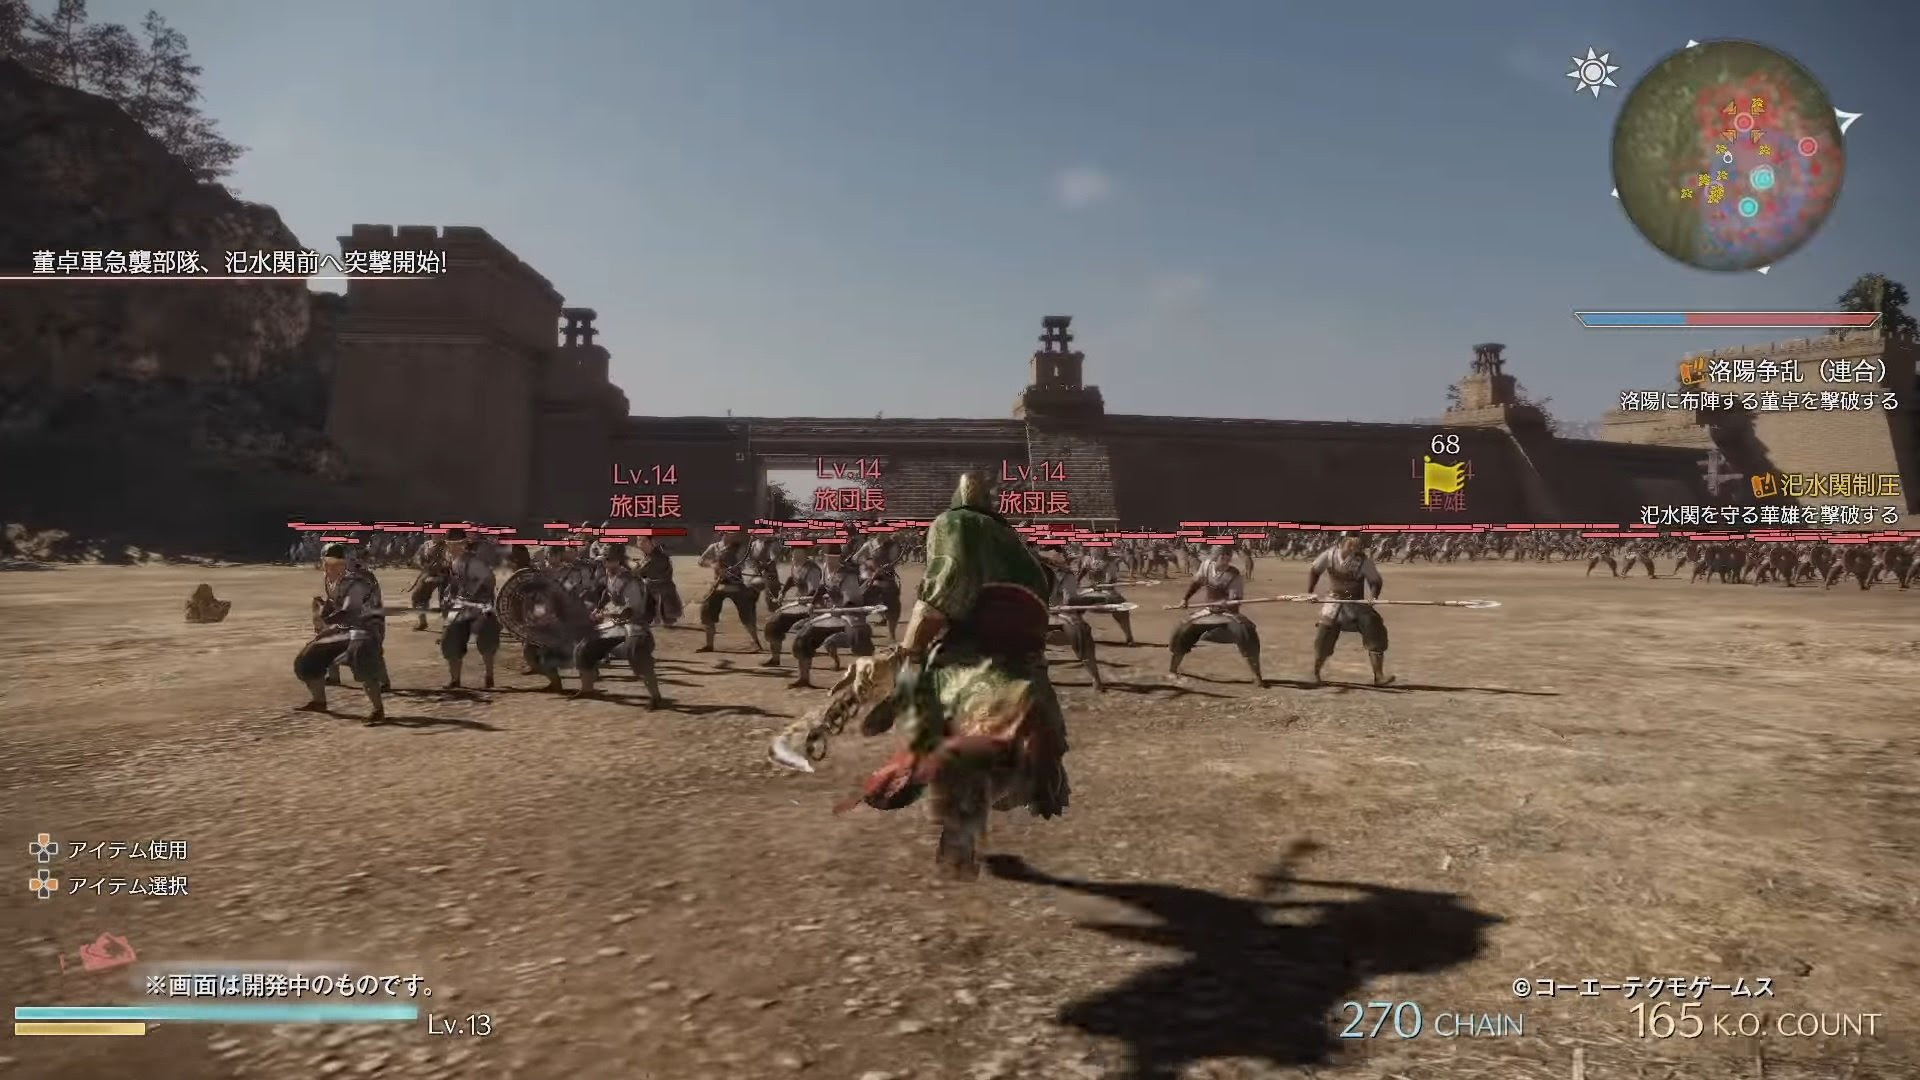 Witness eight minutes of Dynasty Warriors 9's open-world gameplay screenshot